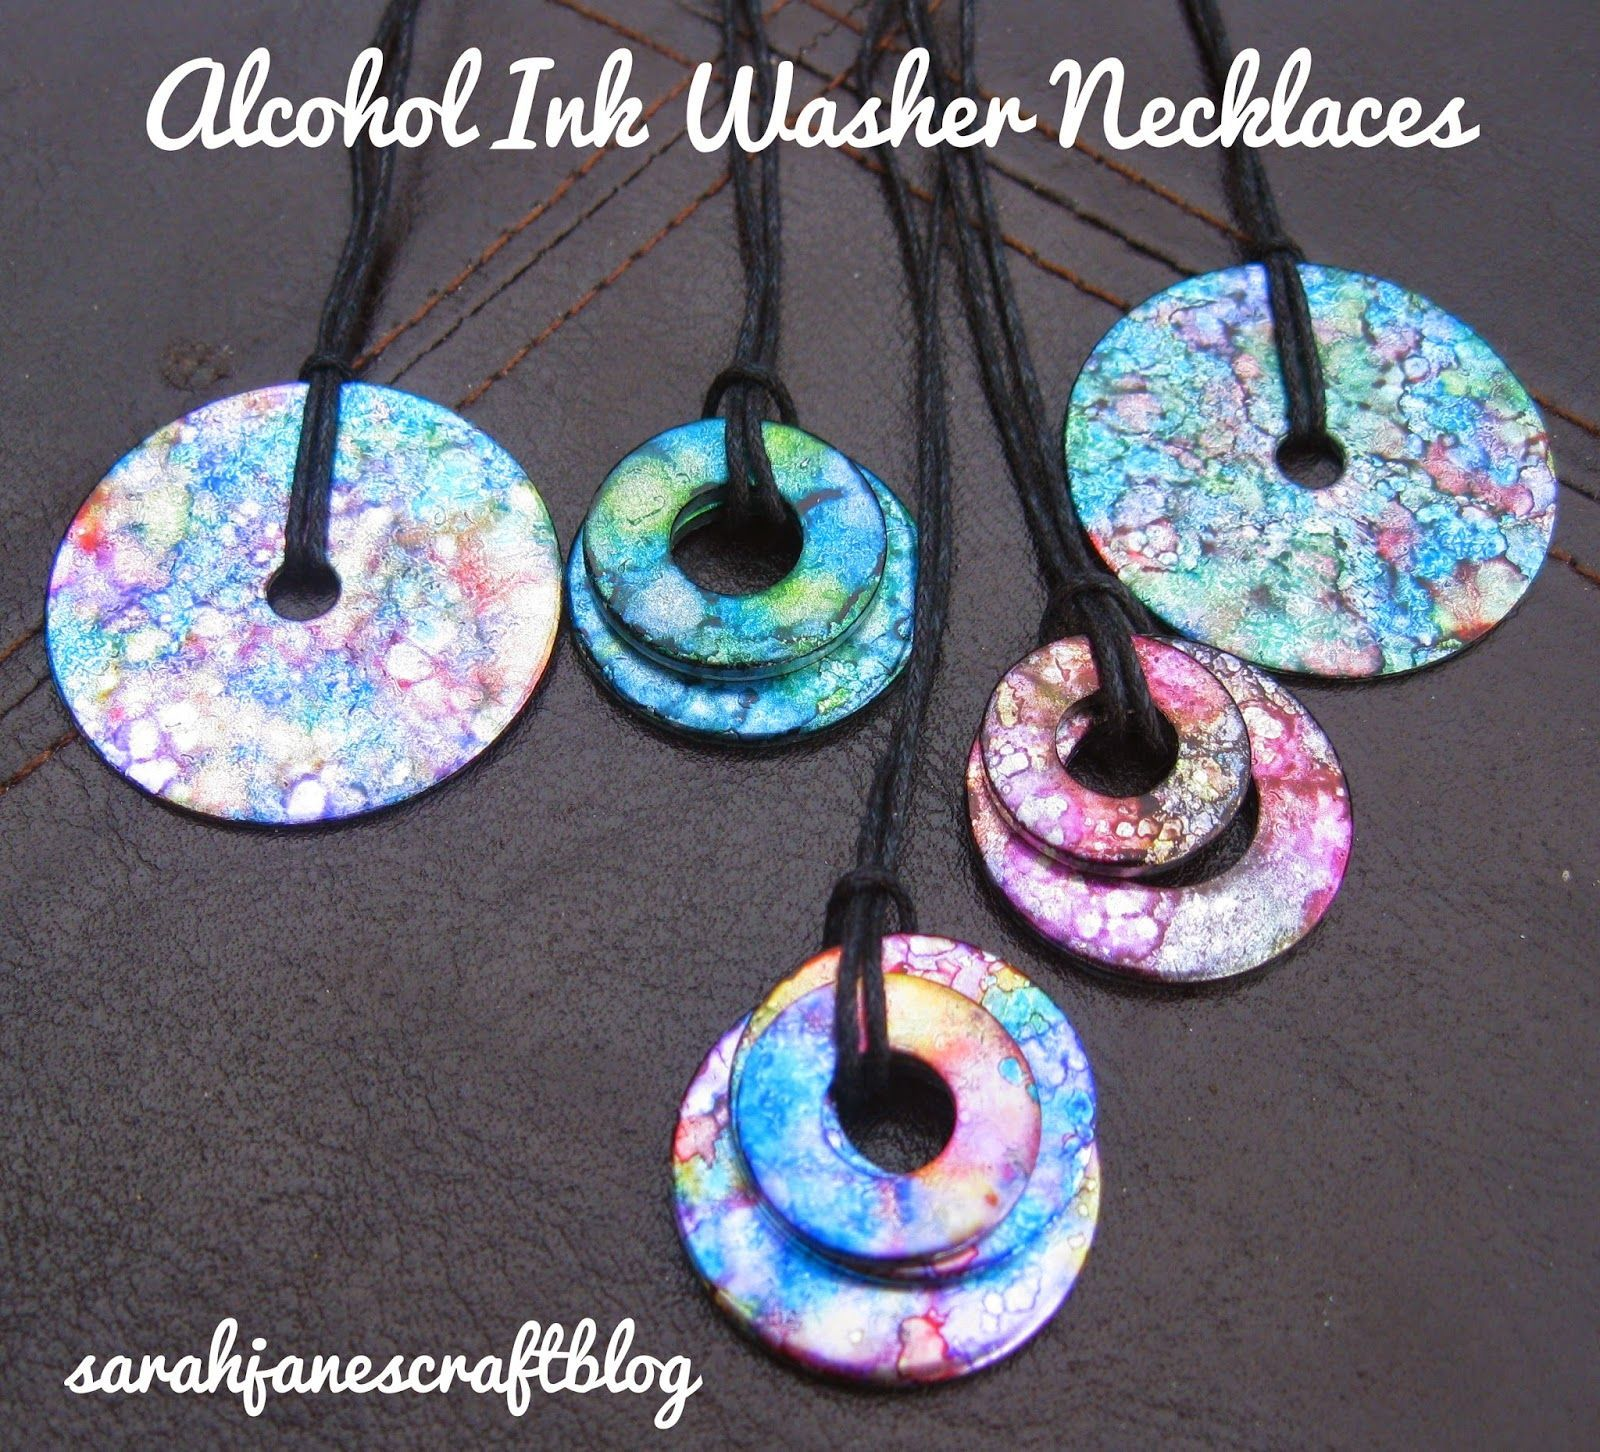 Revisit: Alcohol Ink Washer Necklaces Sarah Jane's Craft Blog: Crafting Revisit: Alcohol Ink Washer NecklacesSarah Jane's Craft Blog: Crafting Revisit: Alcohol Ink Washer Necklaces